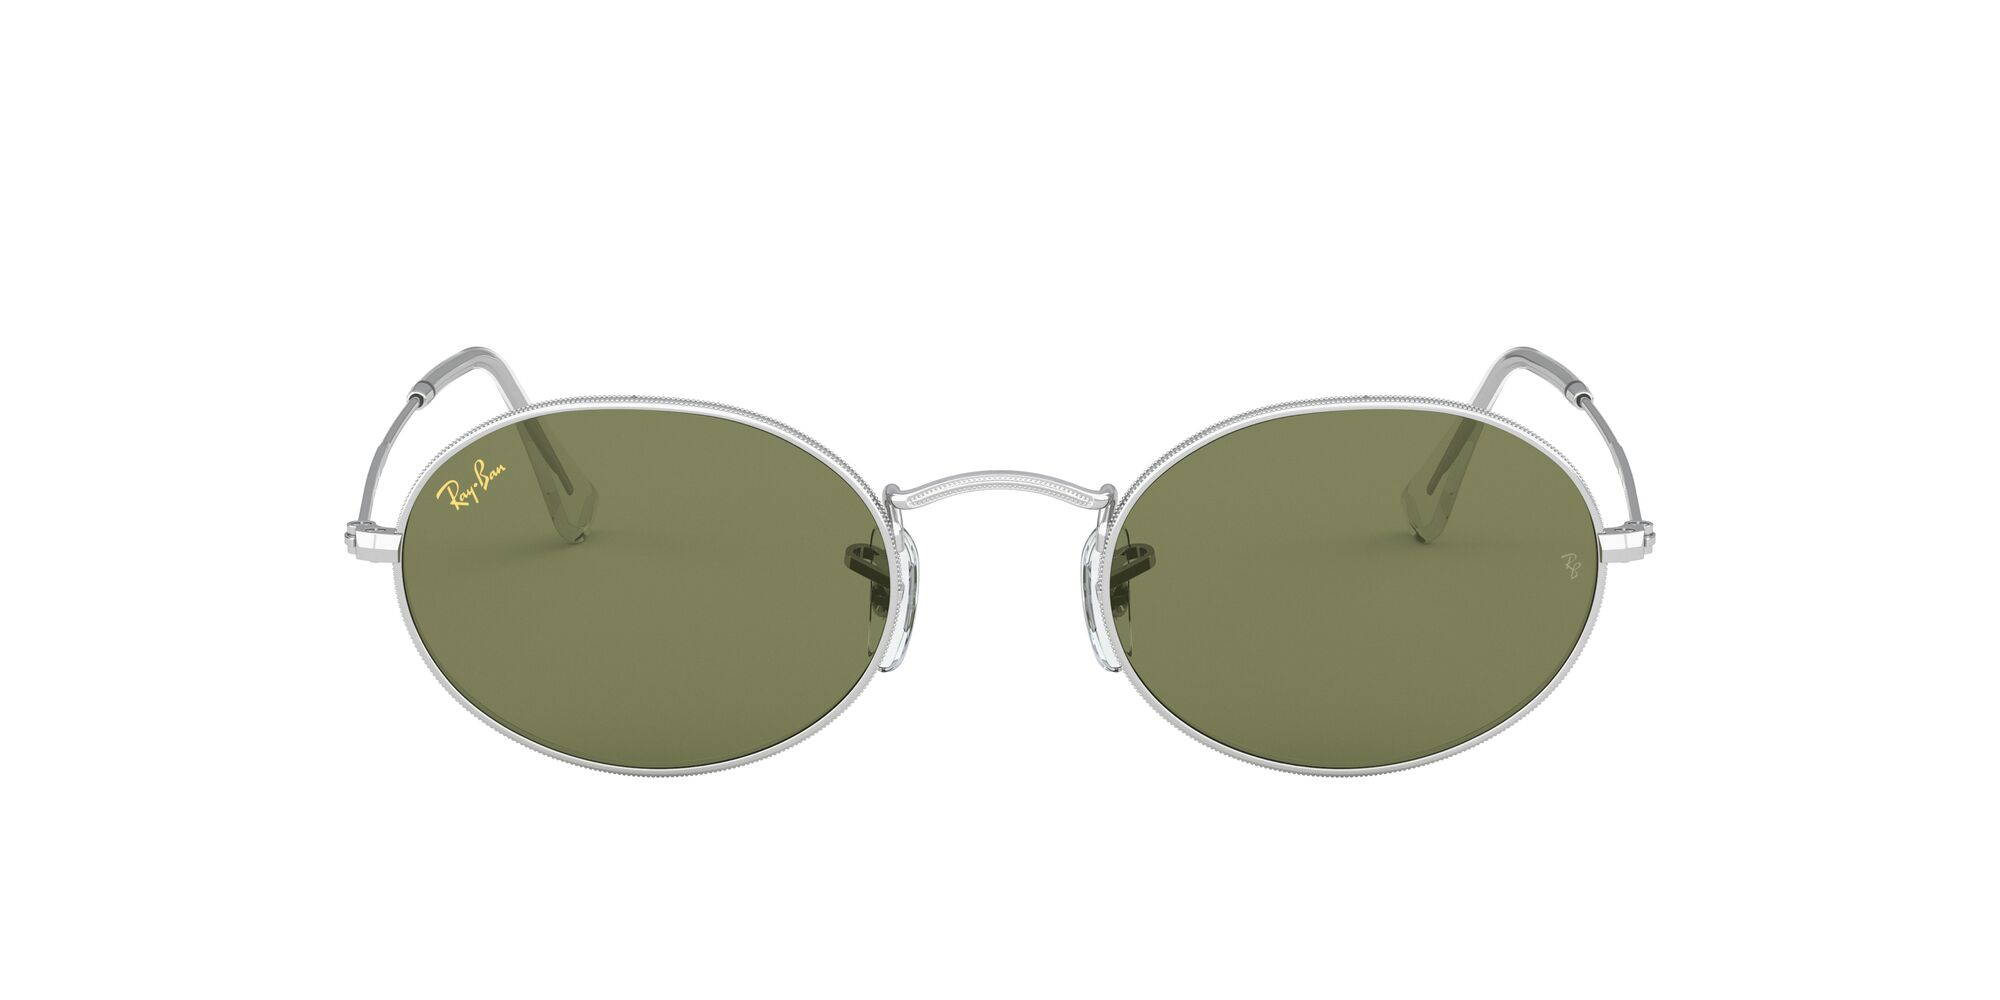 Front Ray-Ban Ray-Ban 0RB3547 91984E 54/21 Zilver/Groen